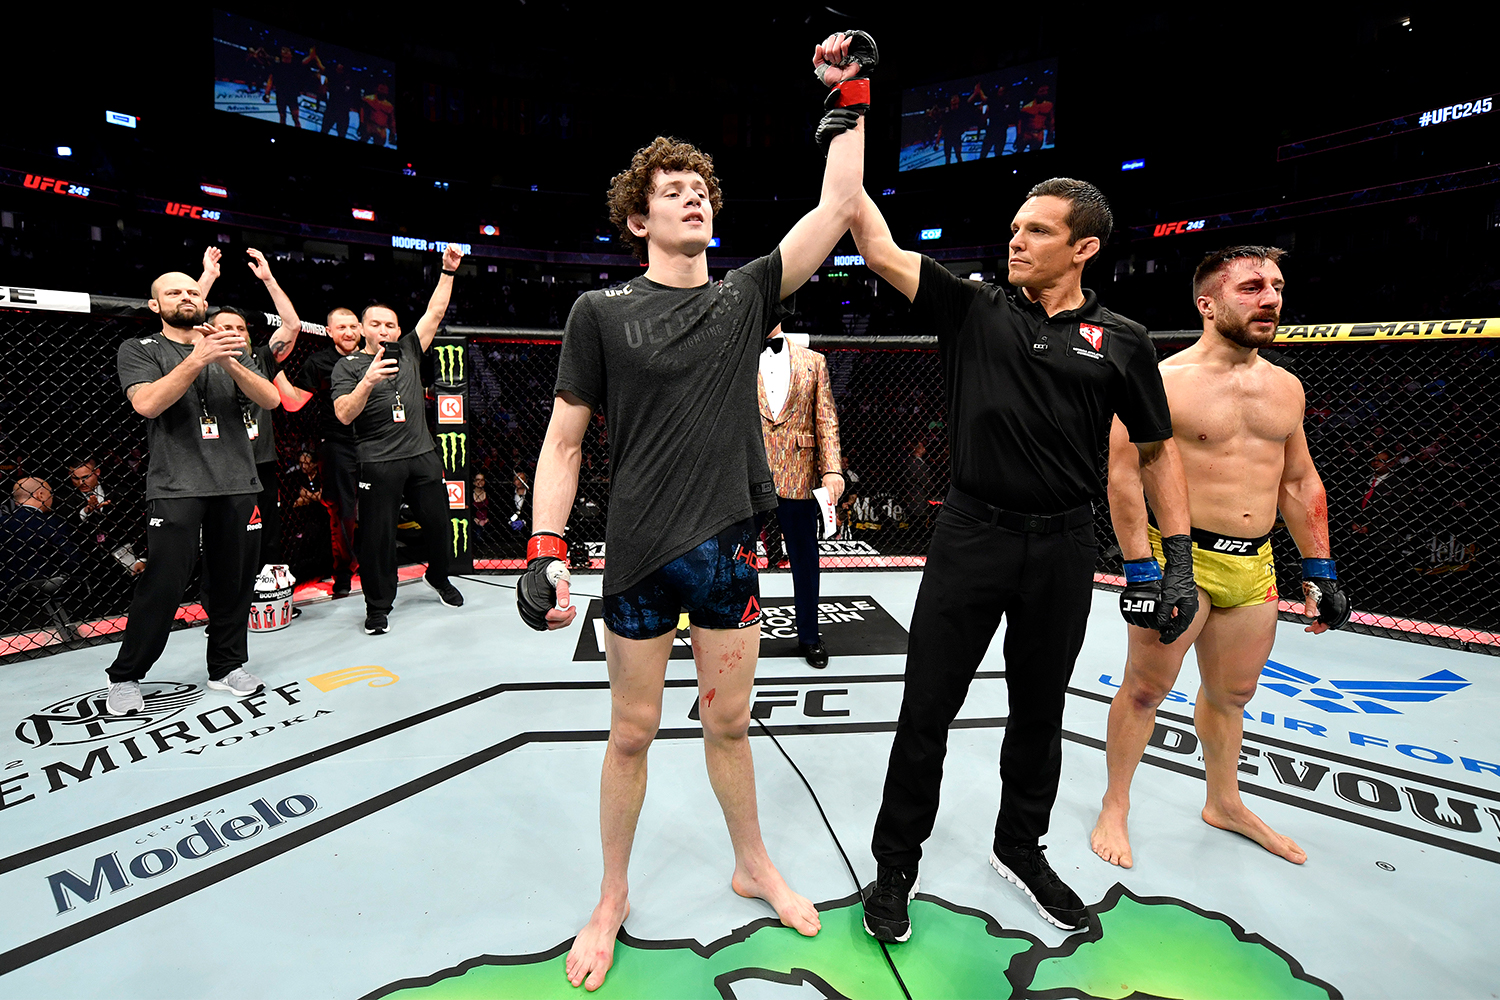 UFC fighter Chase Hooper in the Octagon